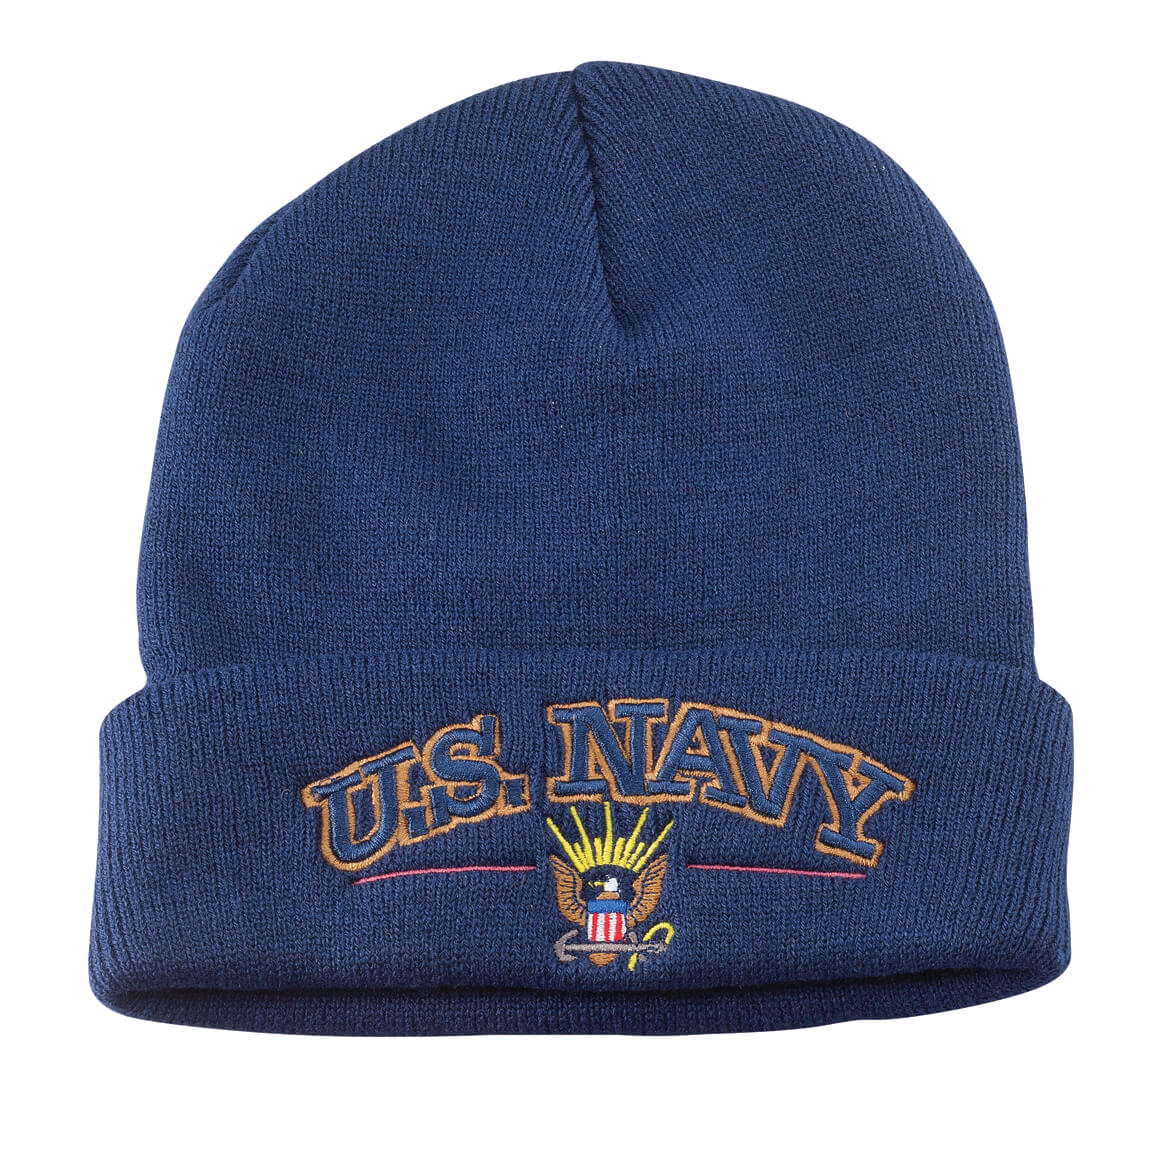 Military Knit Hats